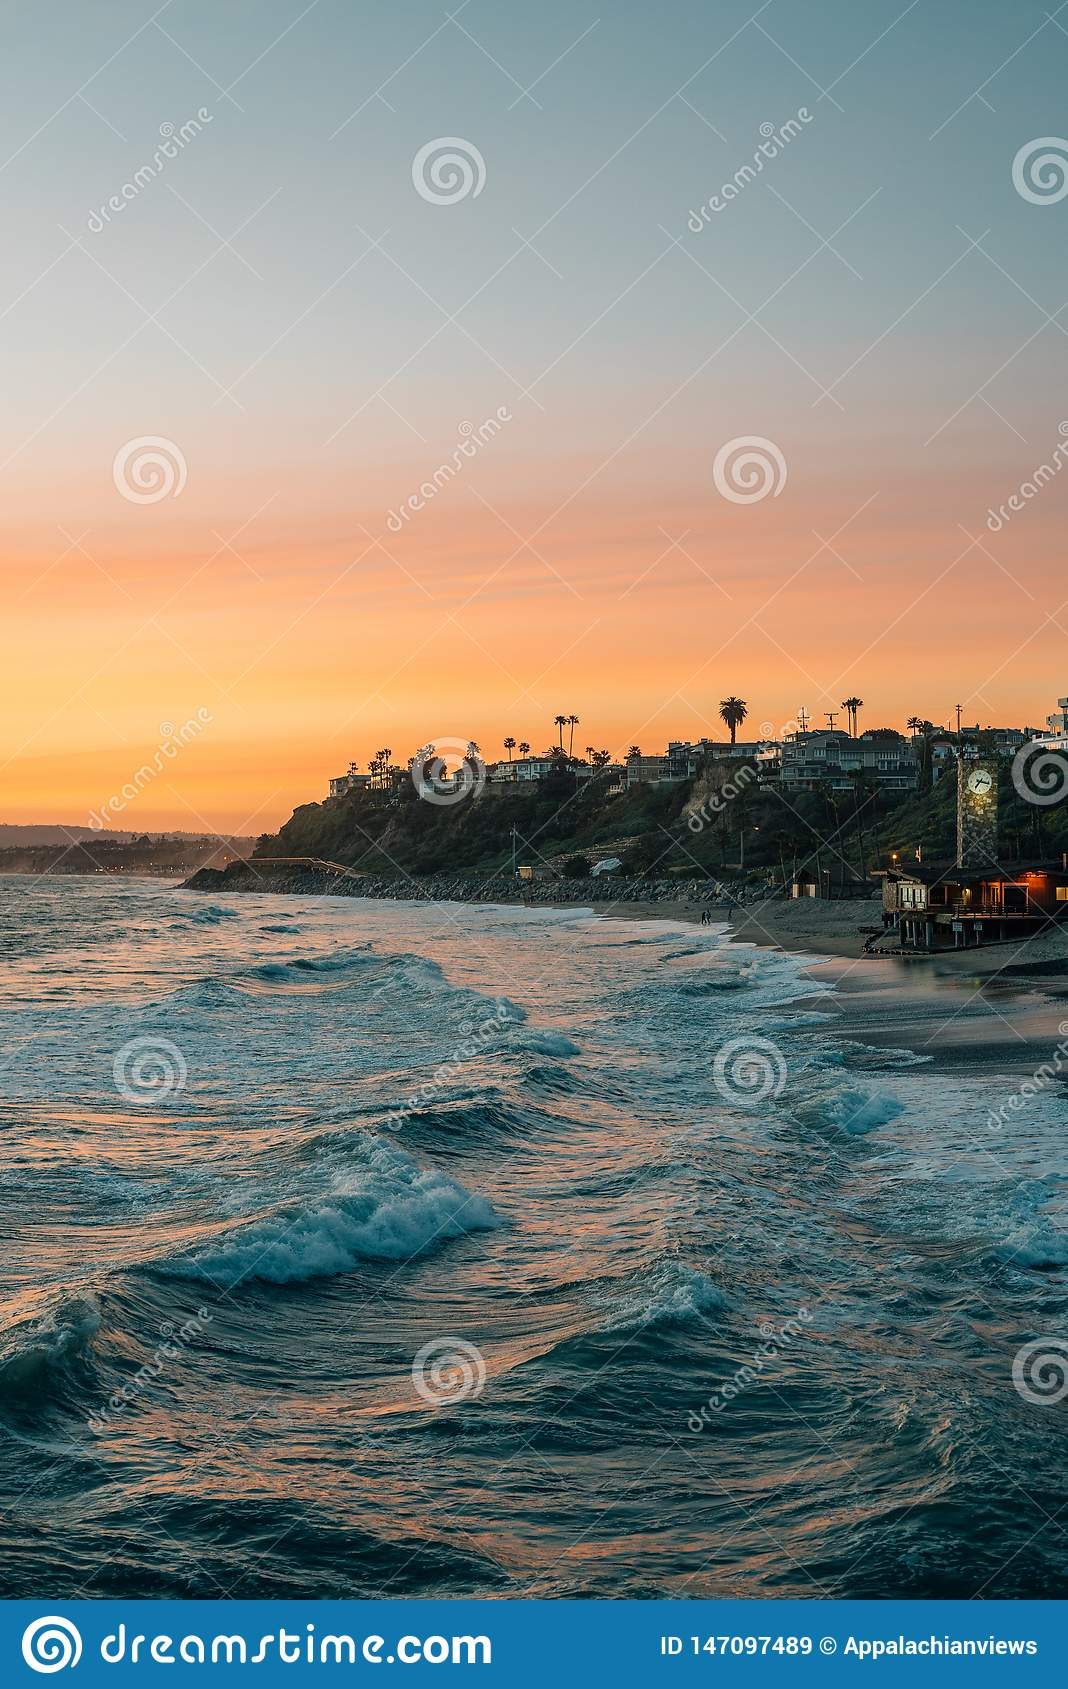 San Clemente Ocean Festival (With images) | San clemente ... |San Clemente Ocean Wave